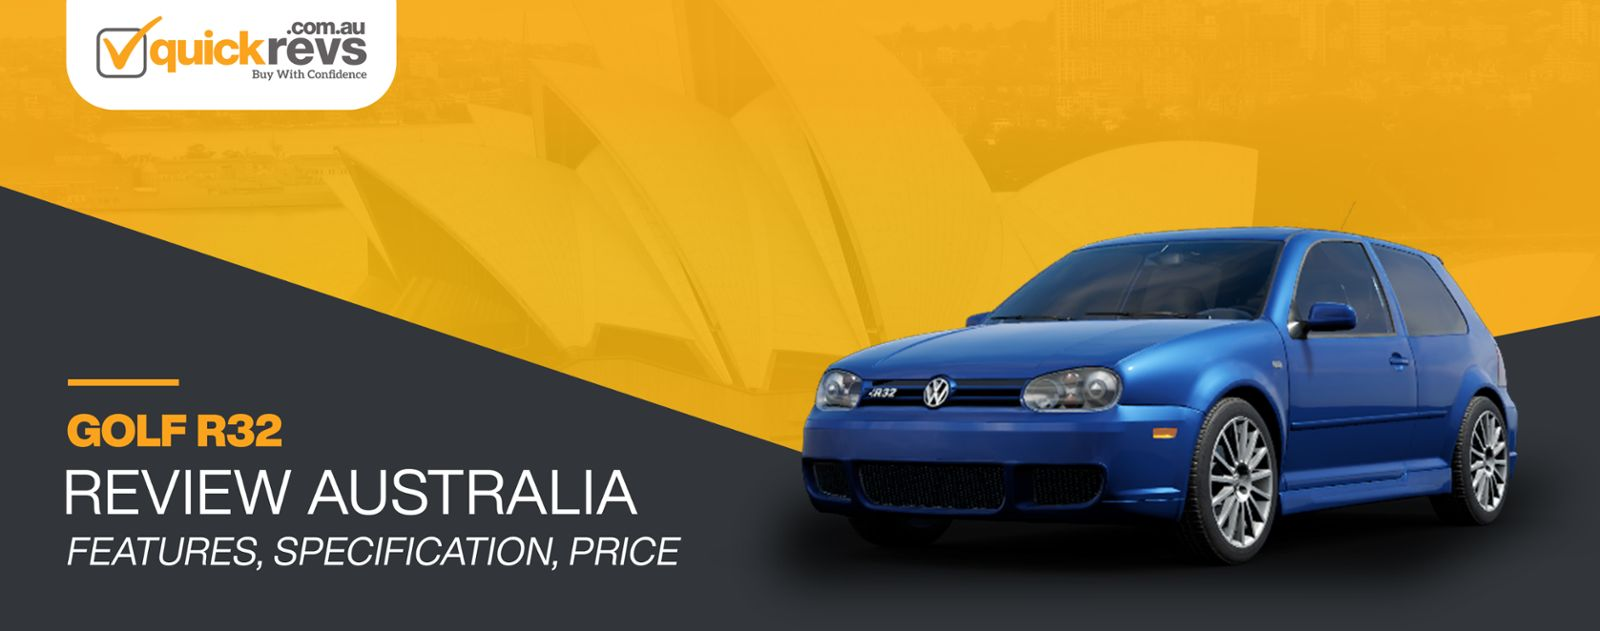 Golf R32 Review Australia